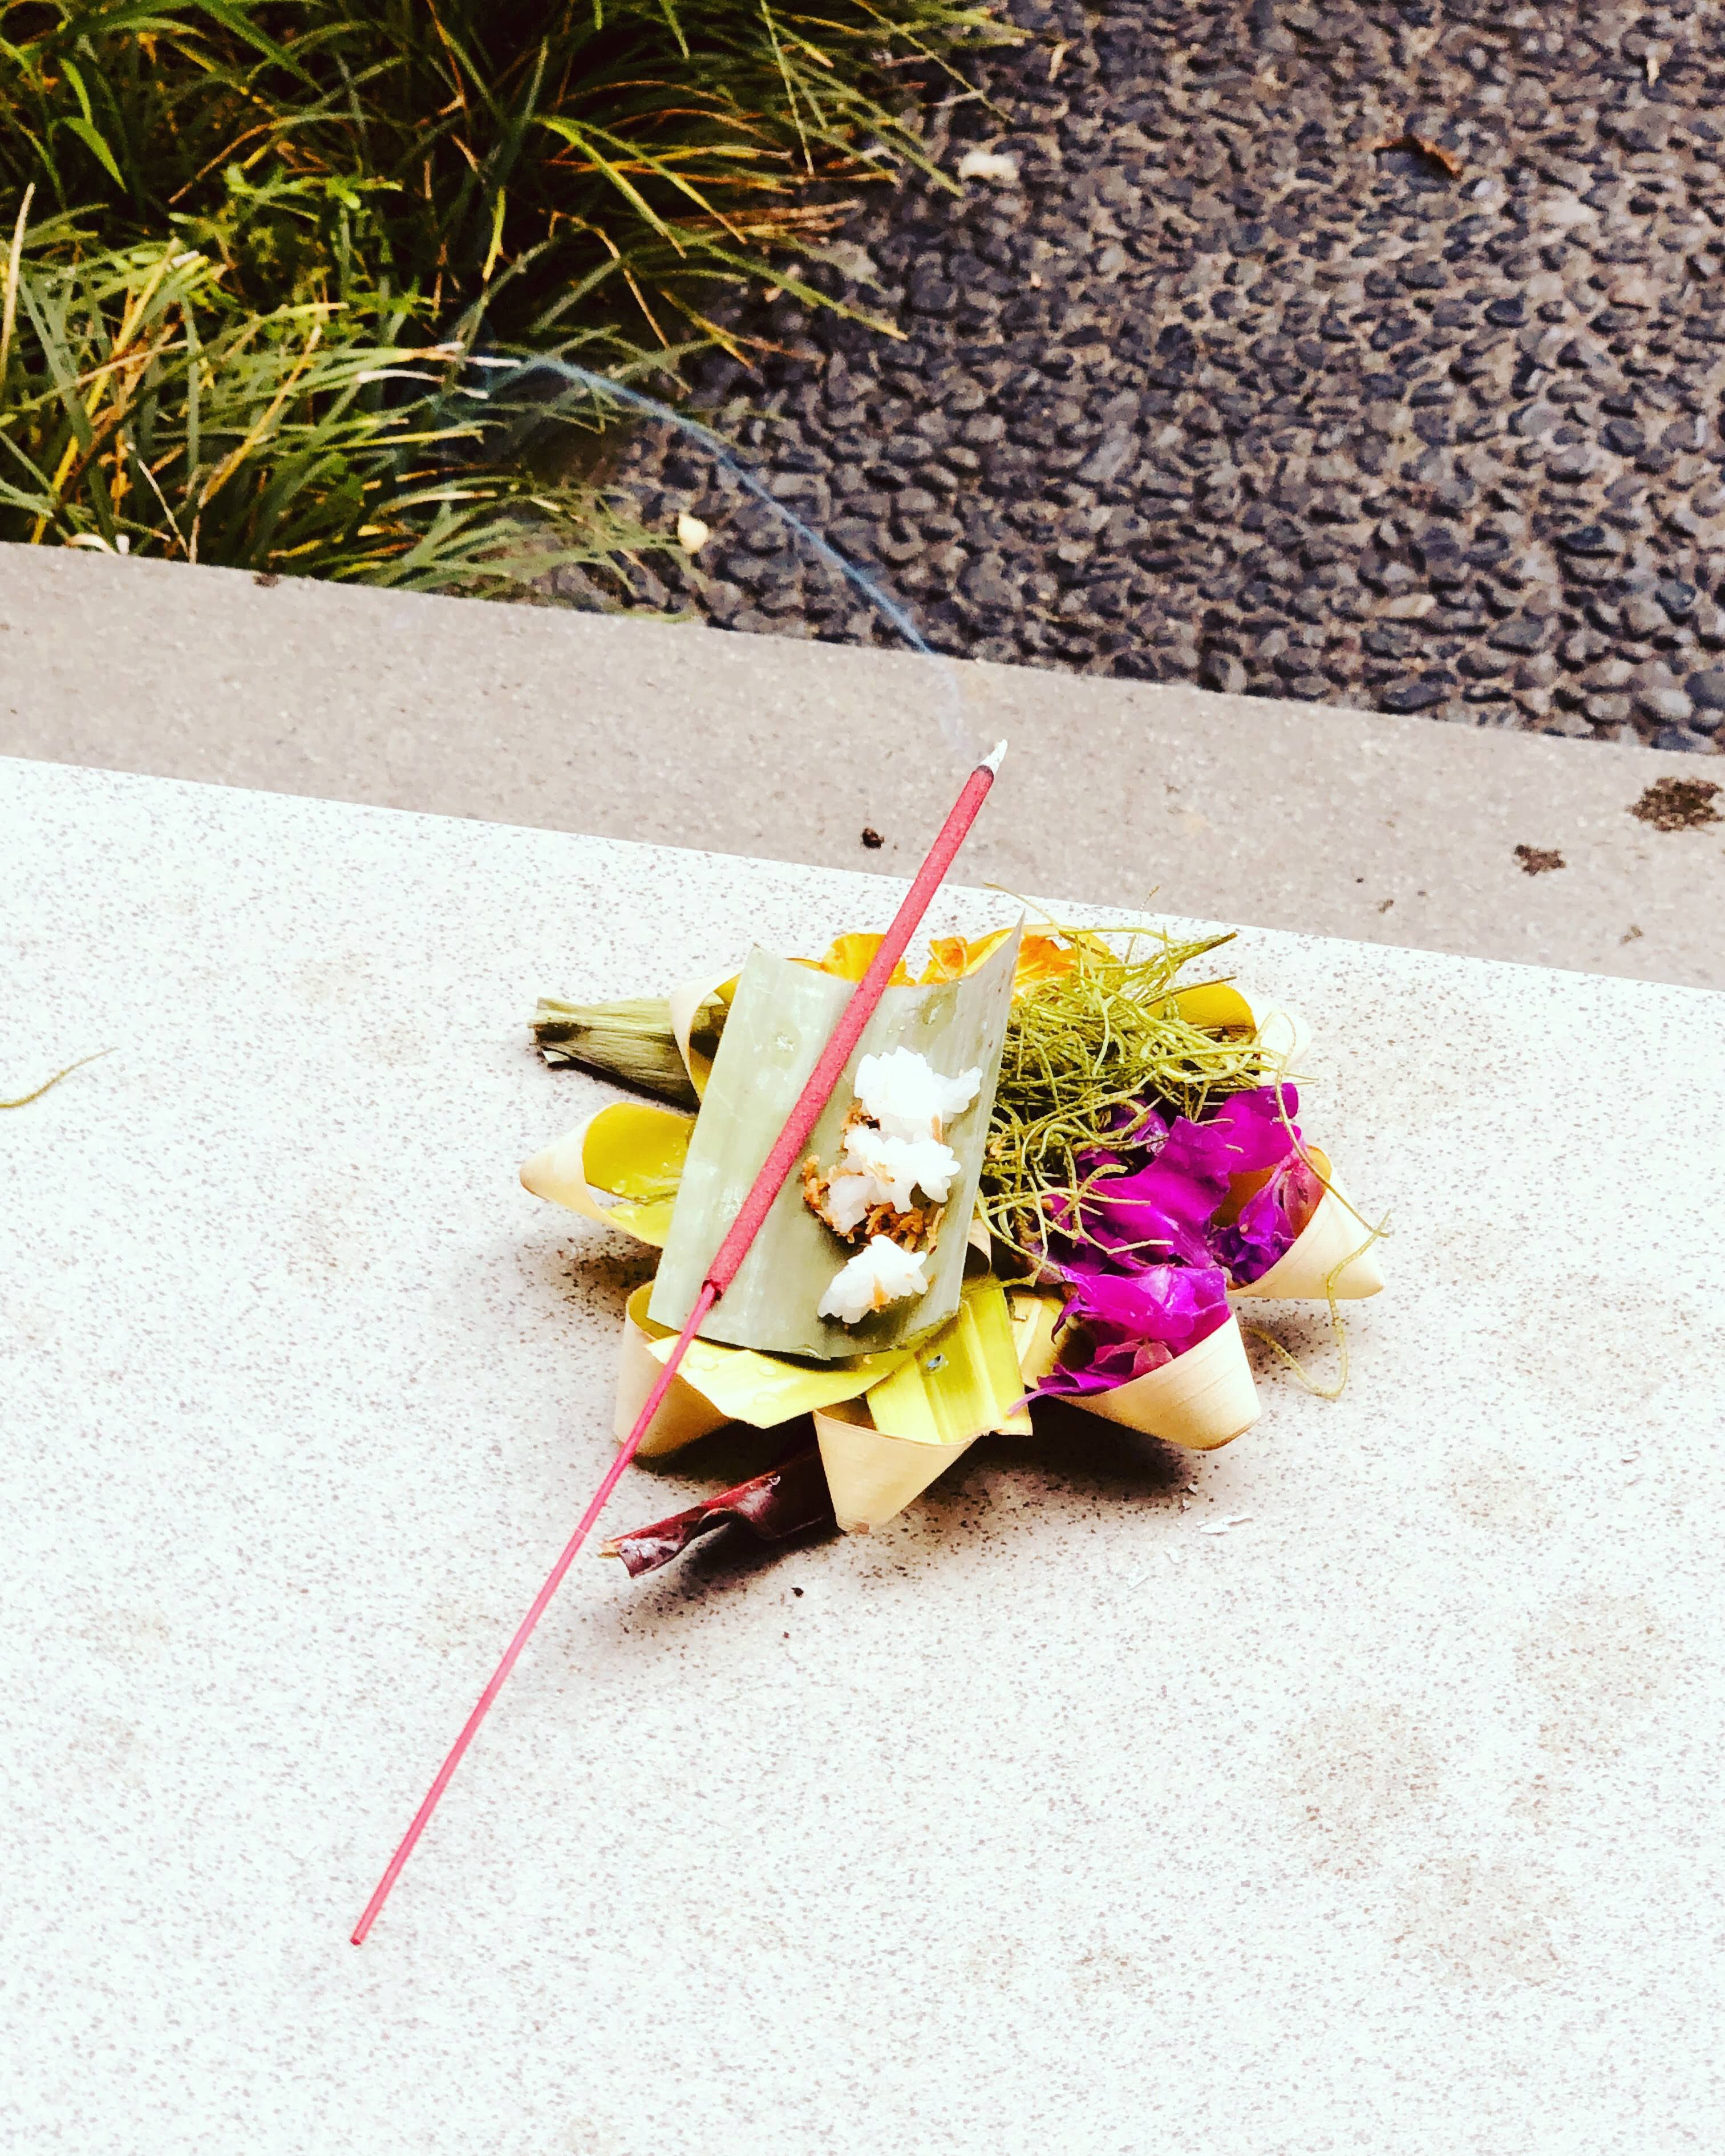 Canang sari -one of the daily offerings made by Balinese Hindus to thank the Gods